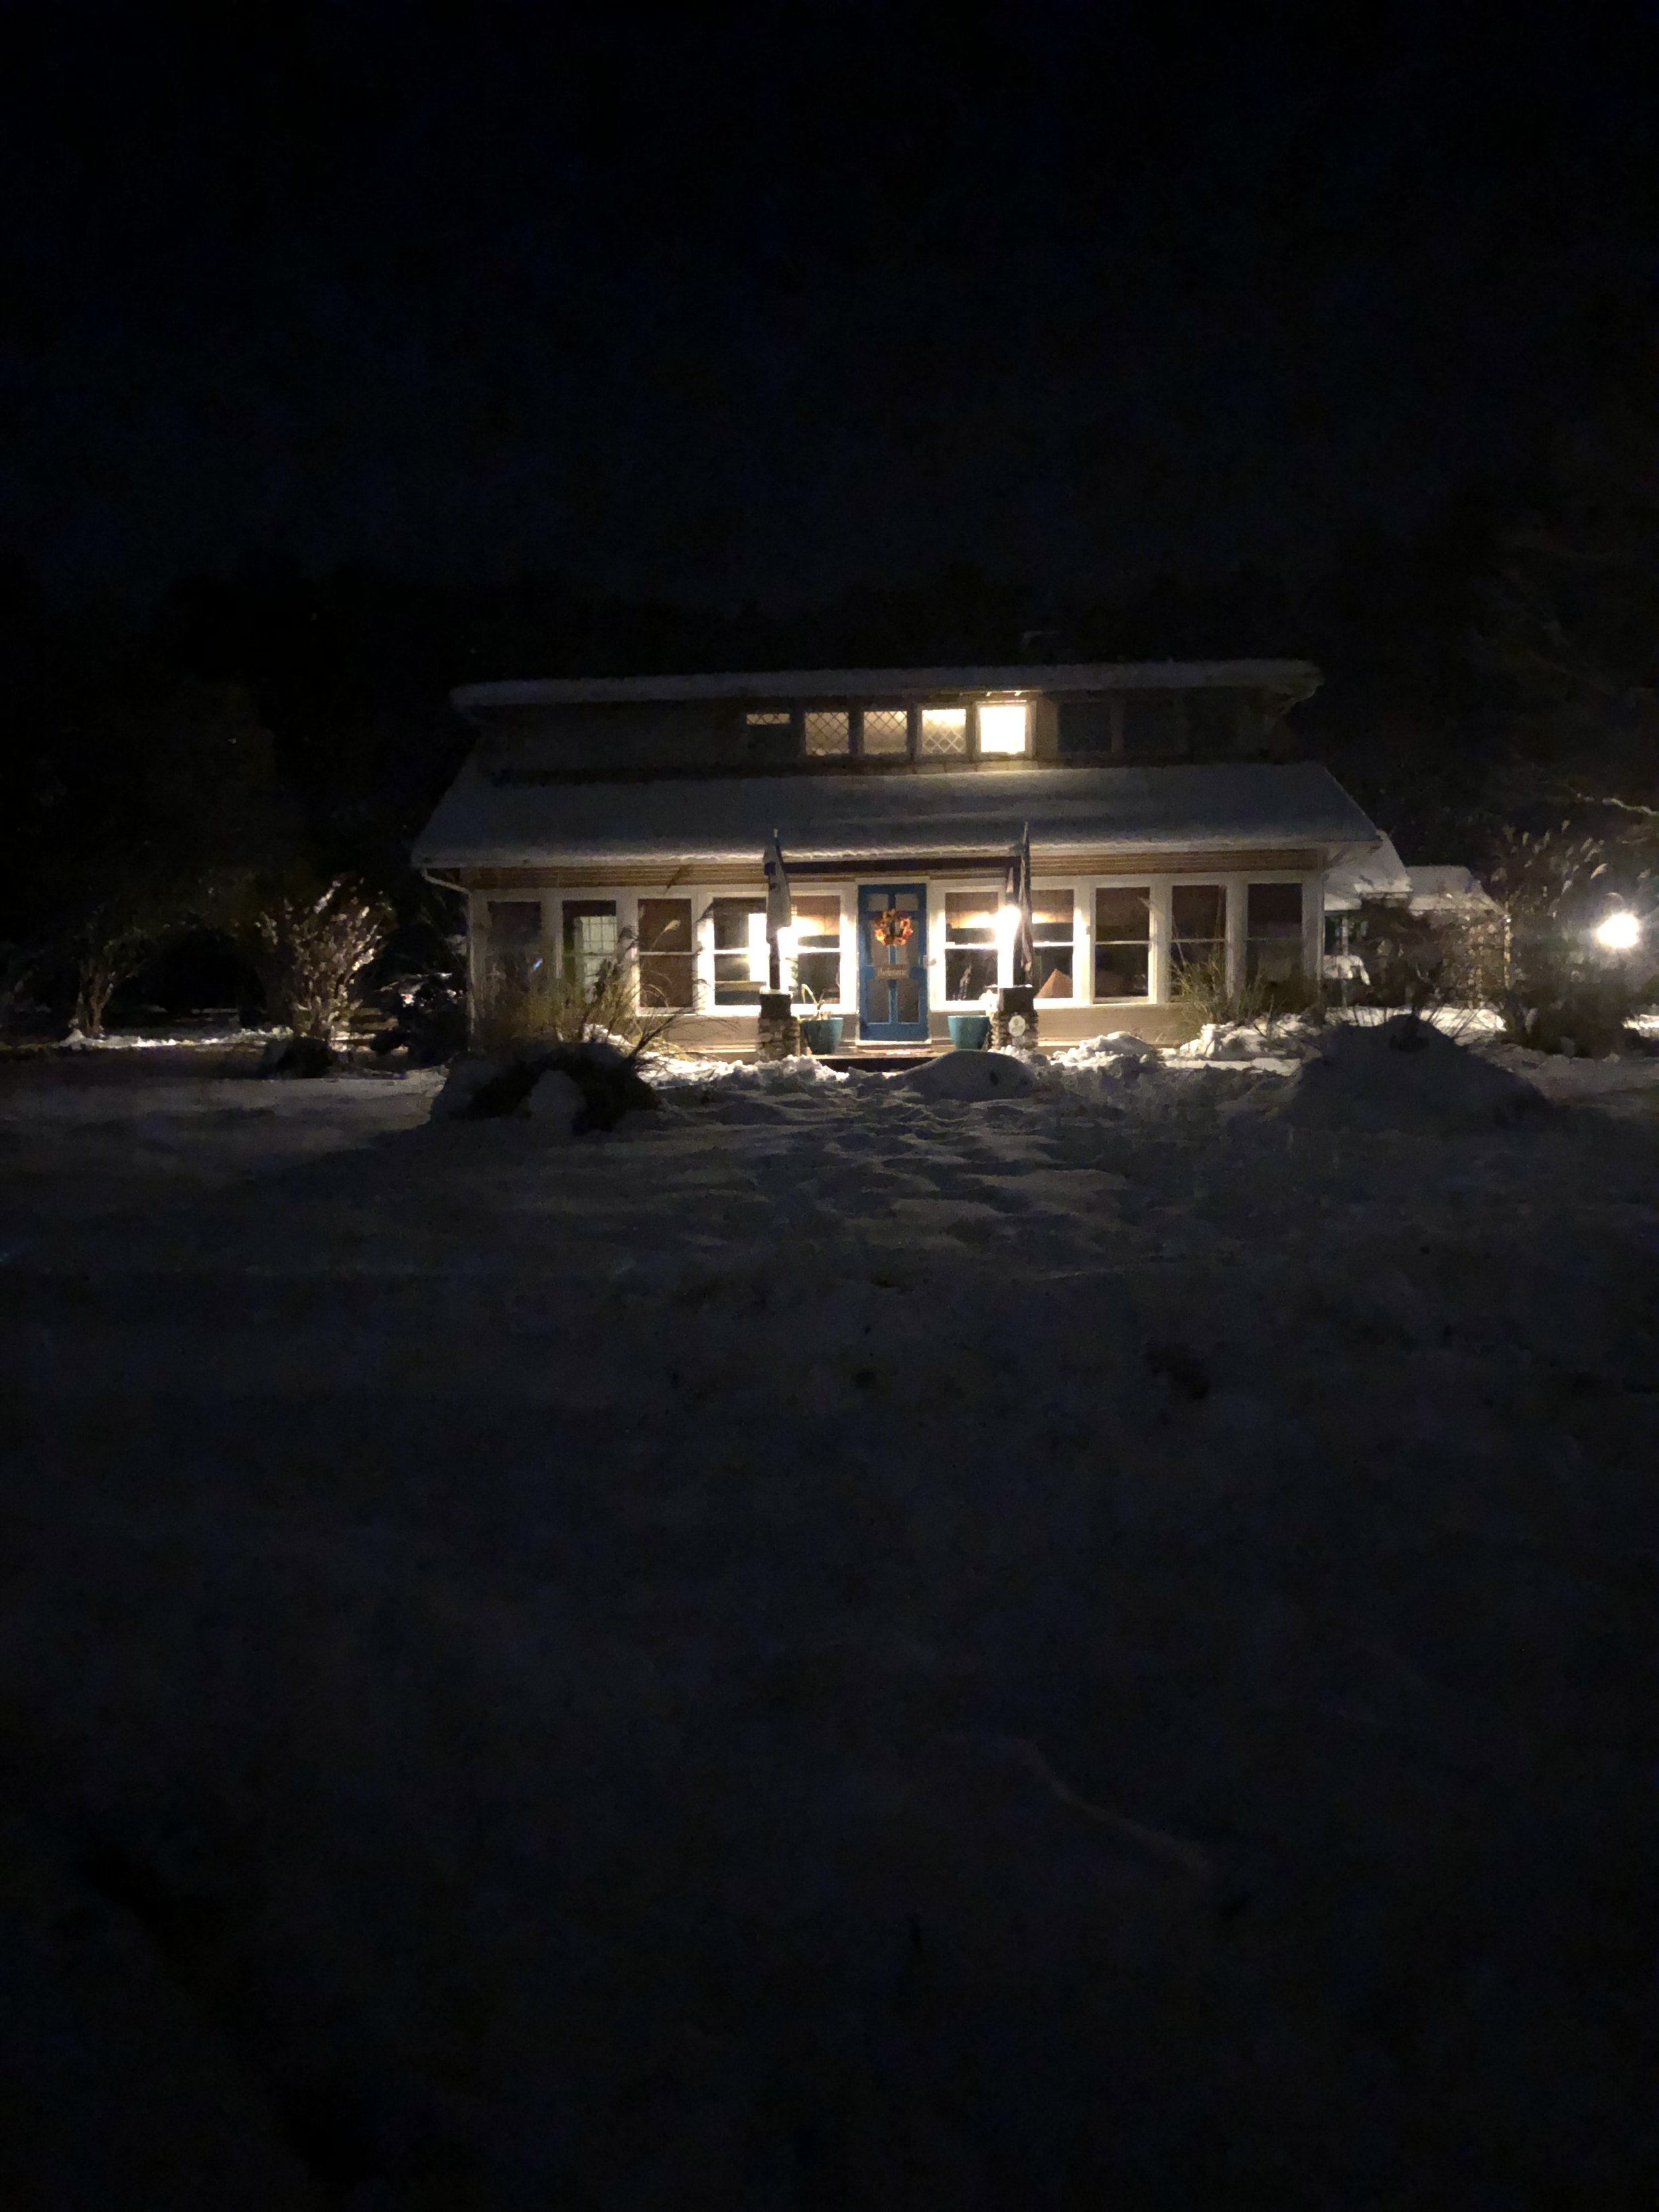 Our house in the snow at night :)